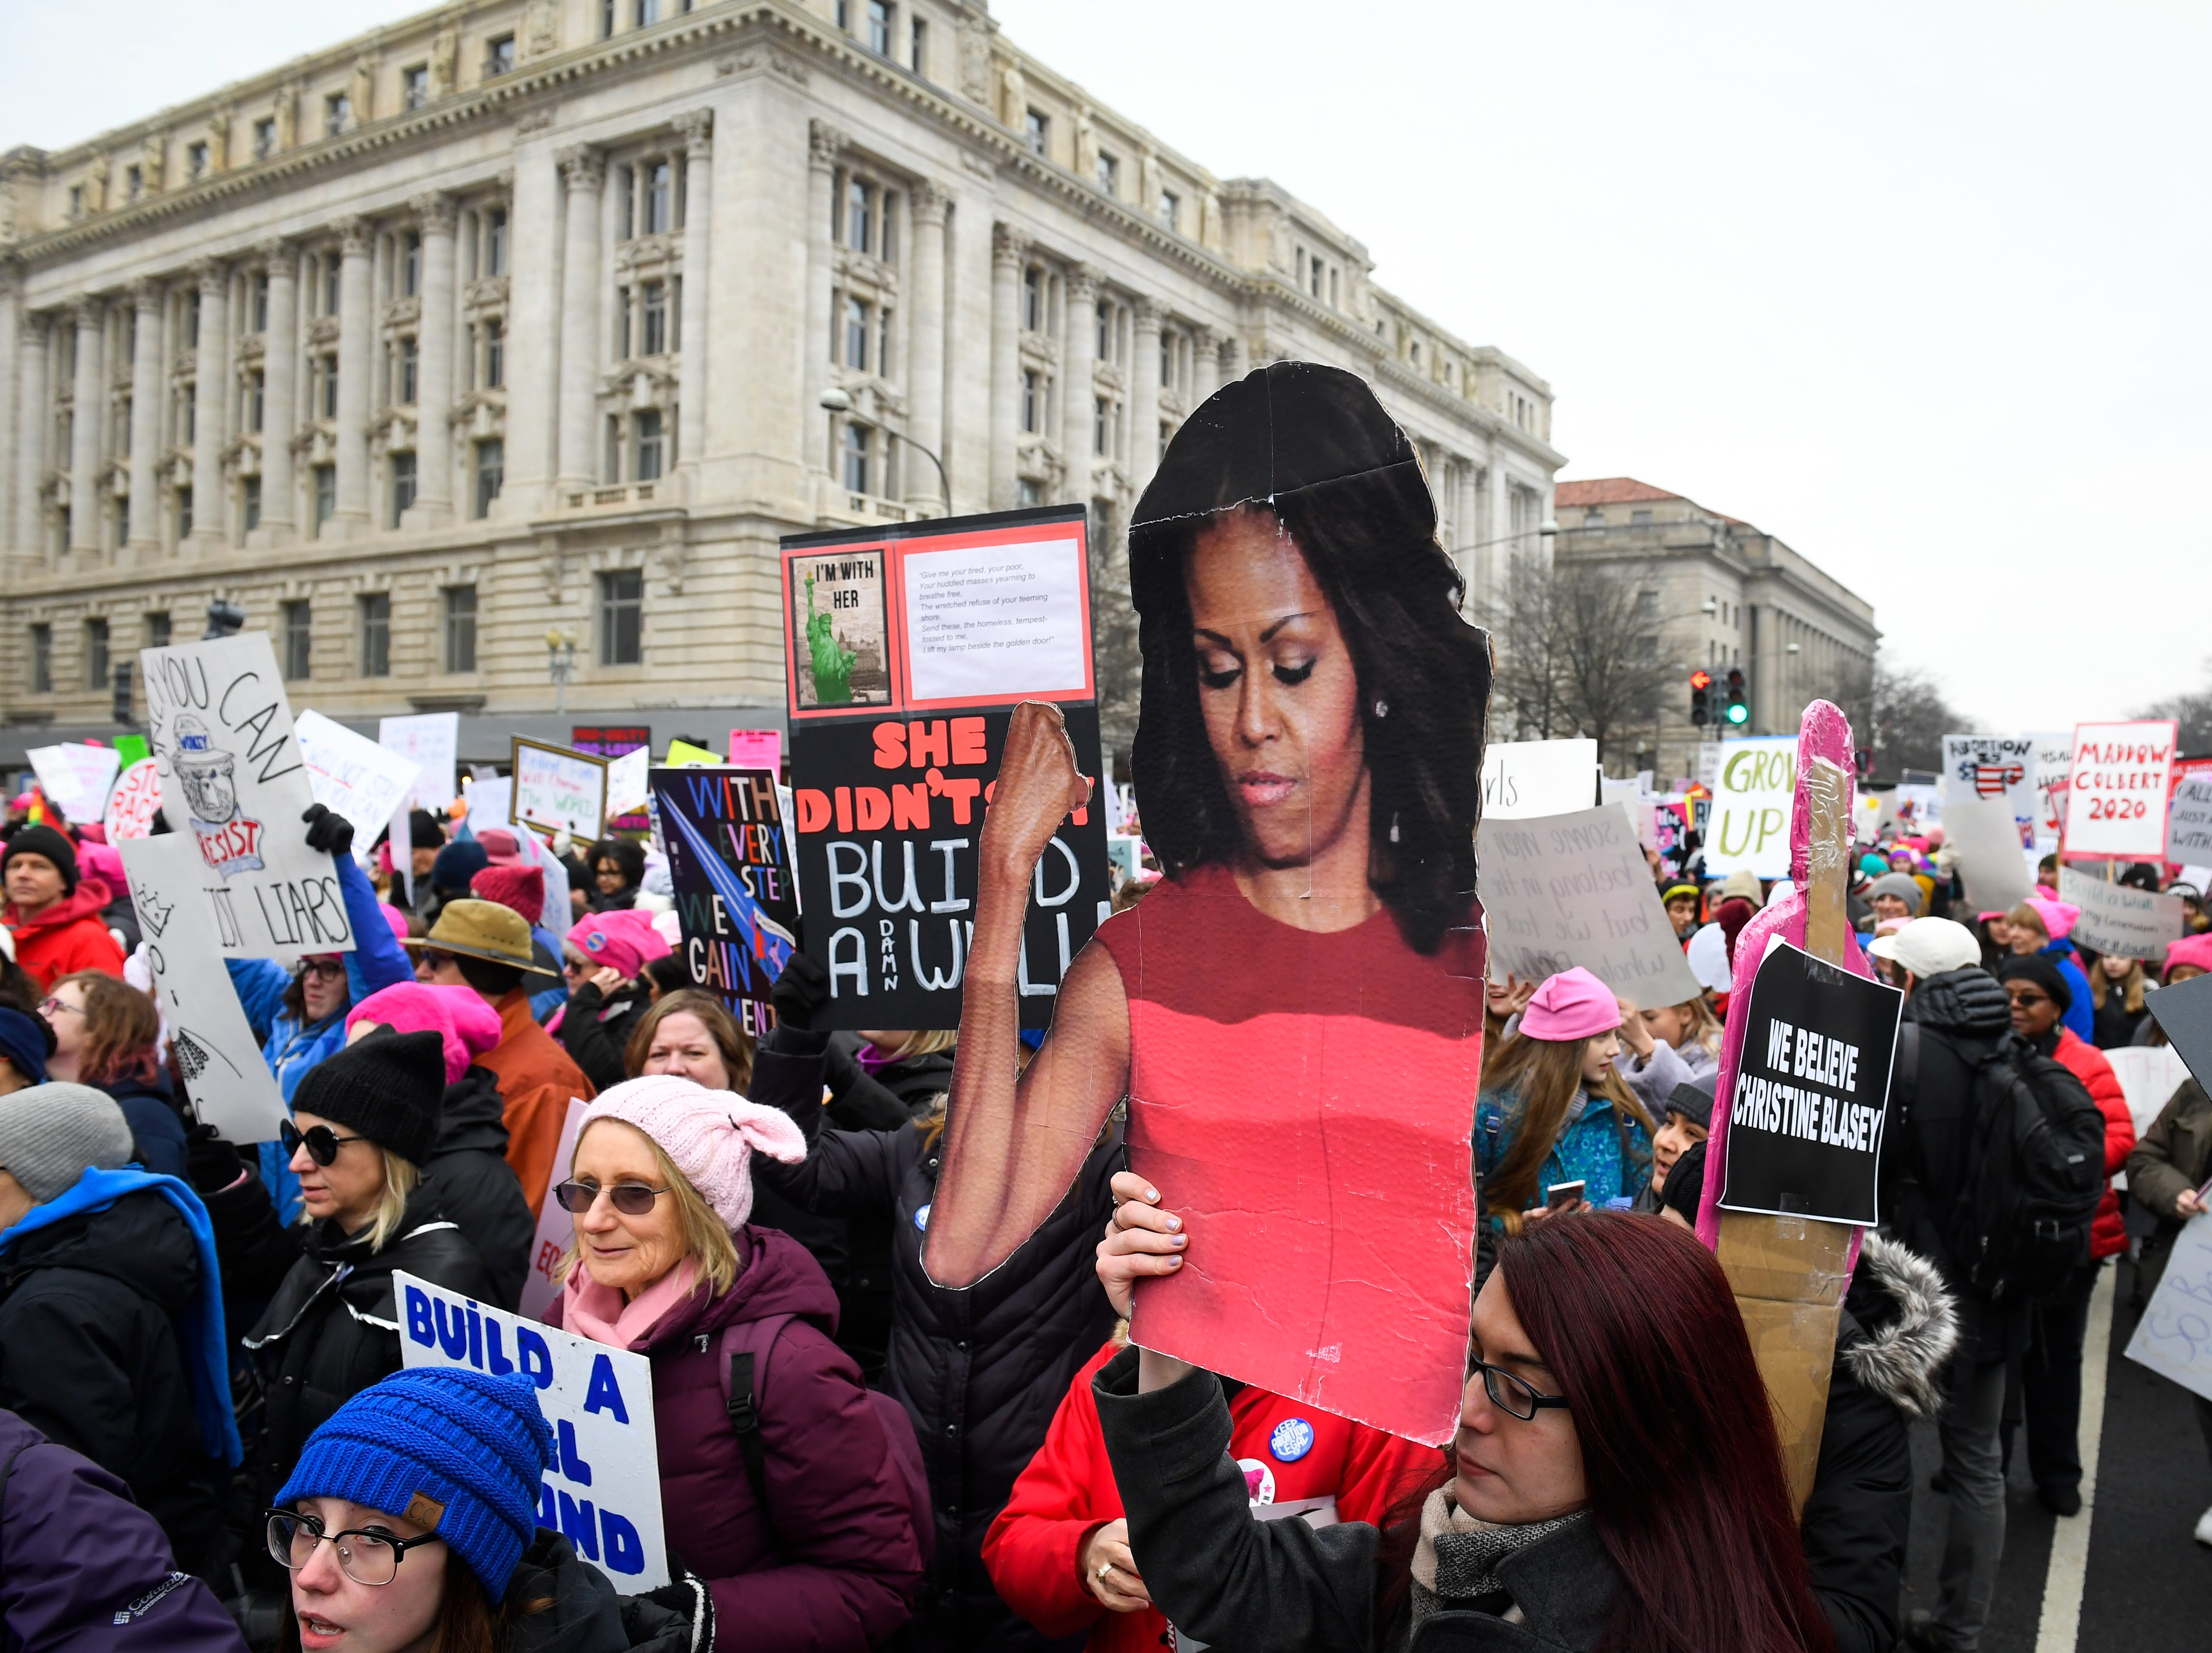 Marchers during the 2019 Women's March on Jan. 19, 2019 in Washington.